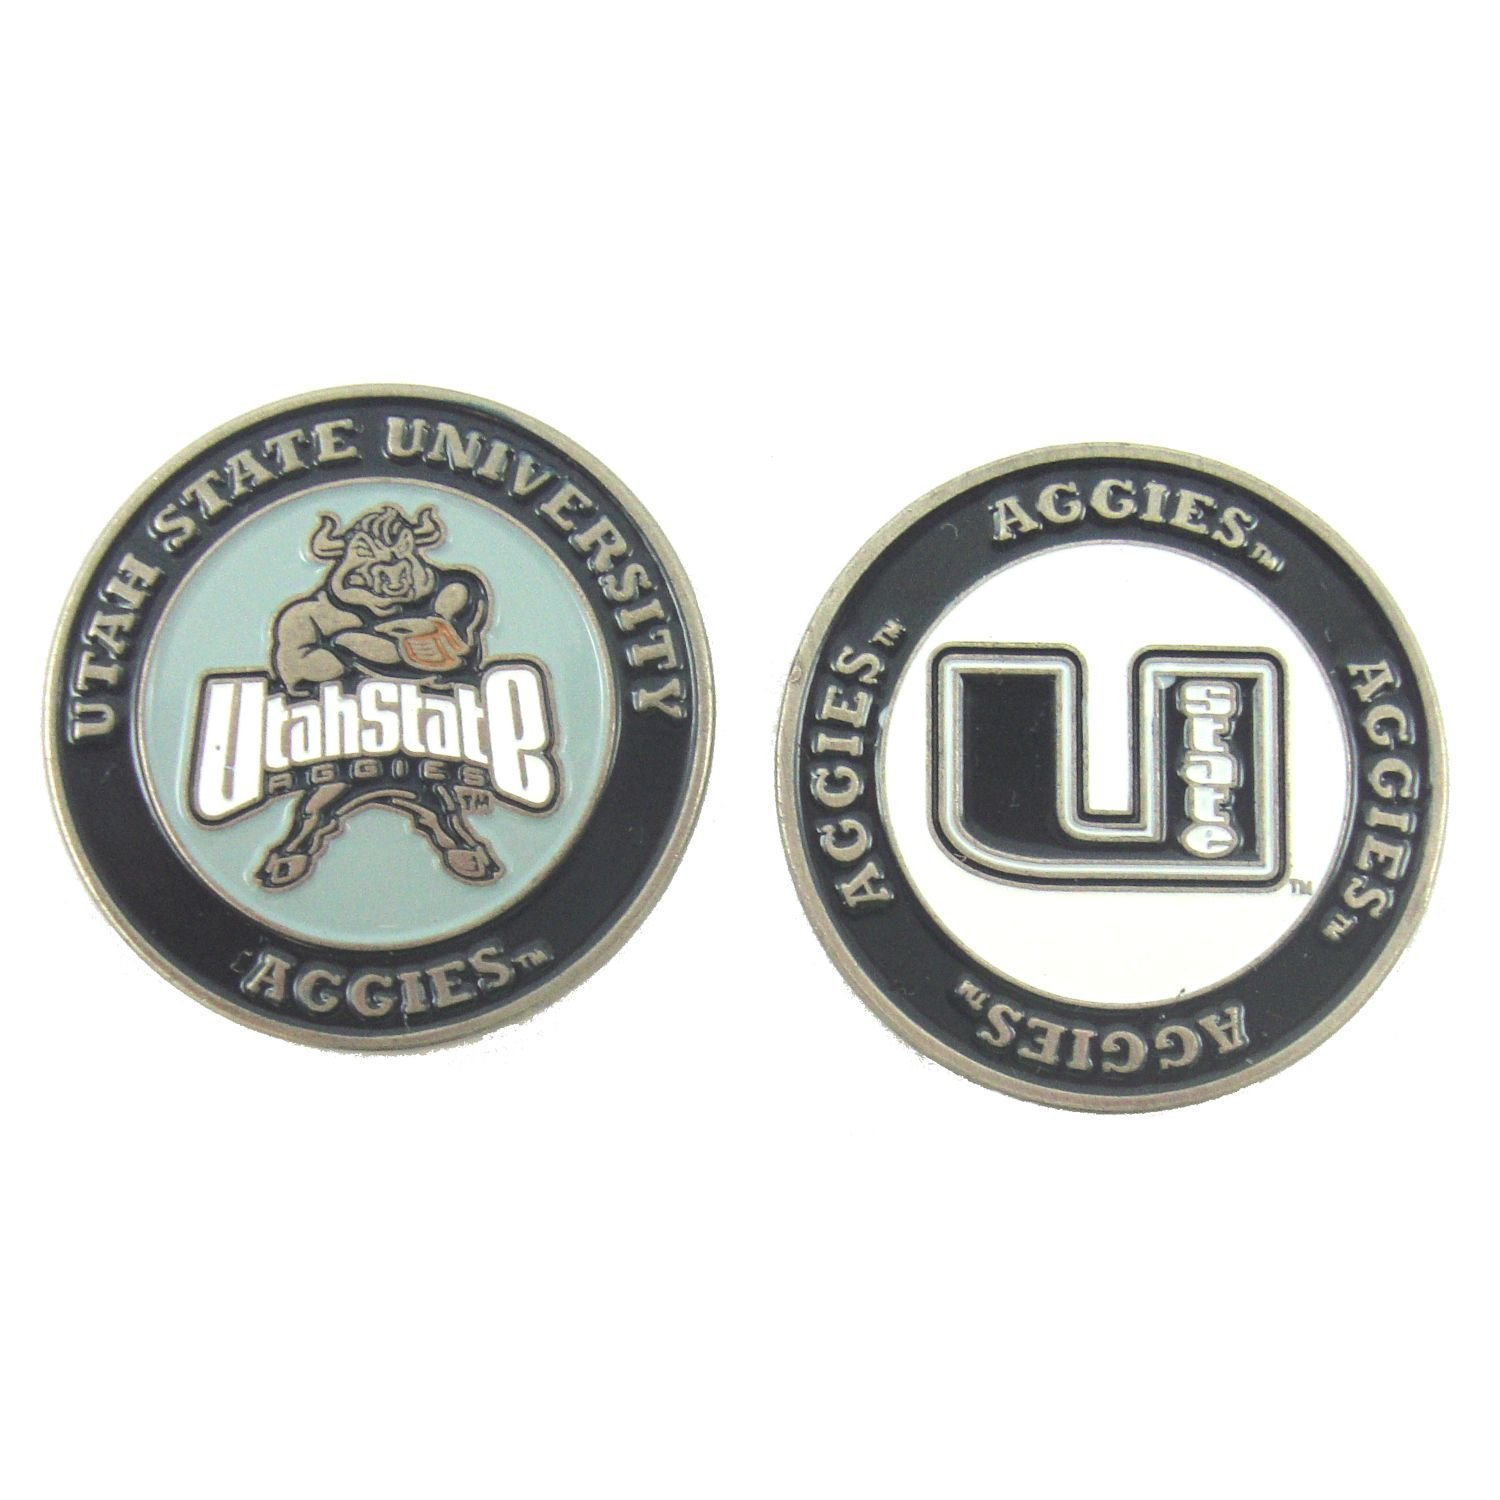 Utah State Aggies NCAA Double-Sided Golf Ball Marker, 1 Team Logo Double Sided Ball Marker By Waggle Pro Shop,USA